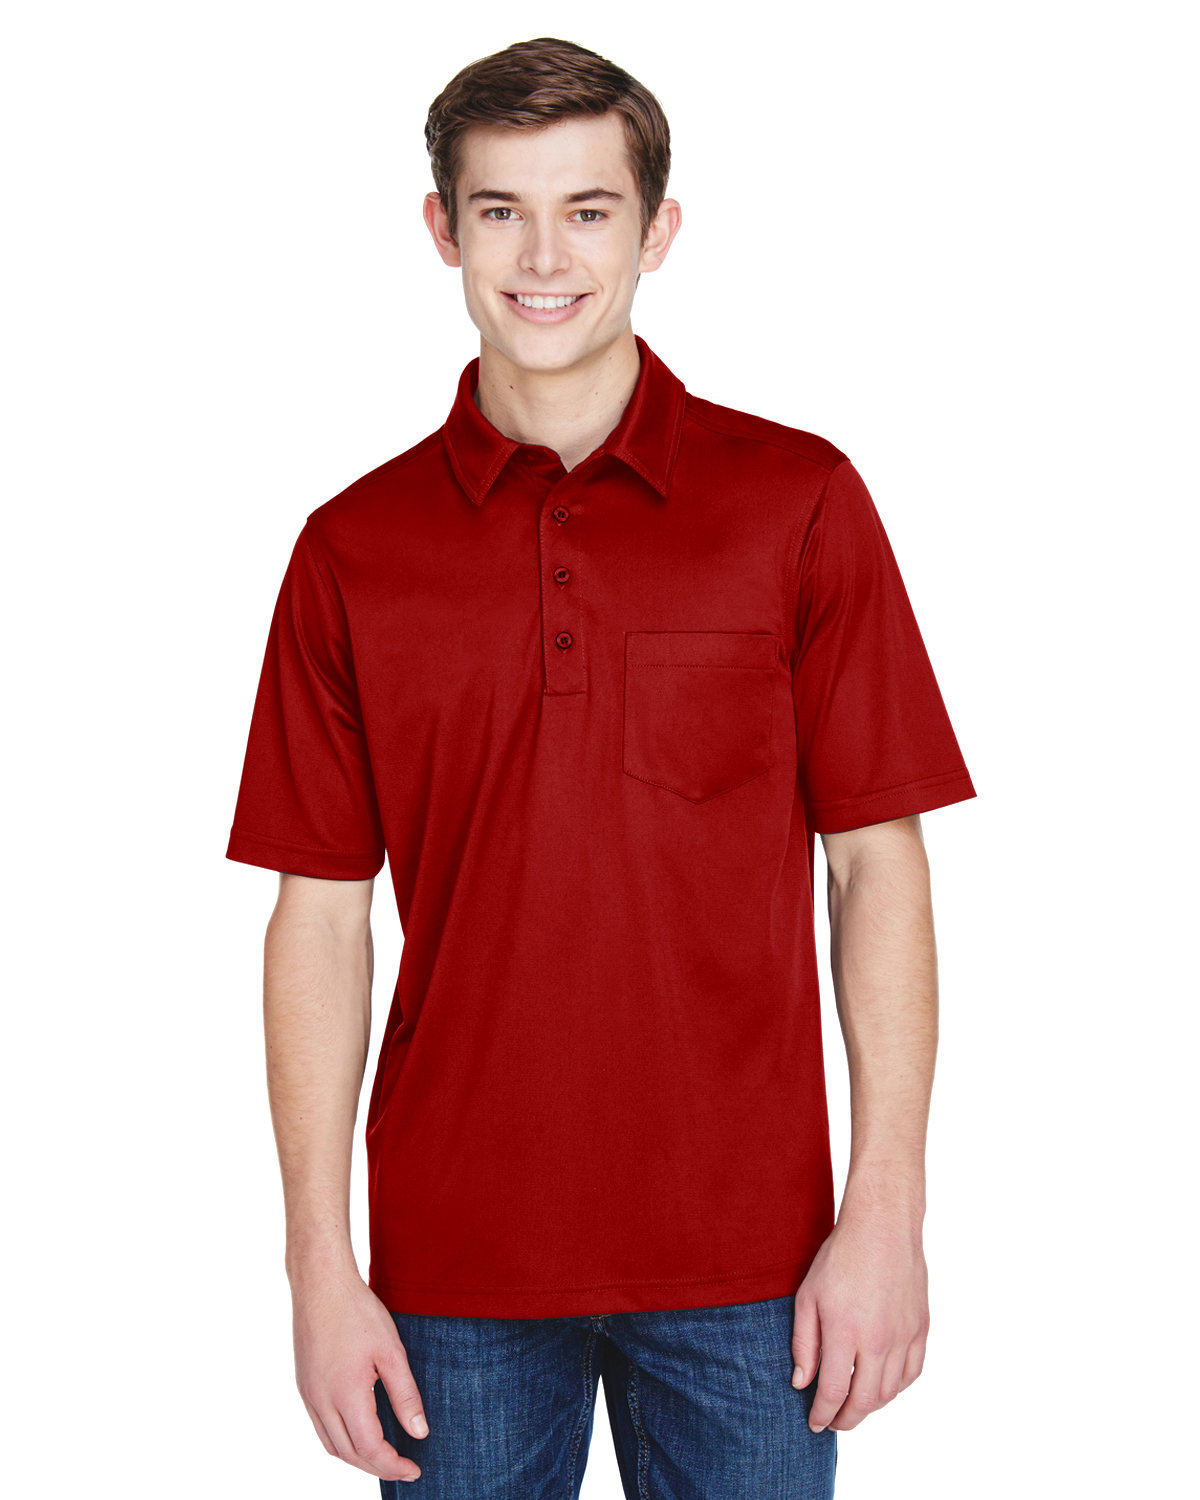 Extreme Men's Tall Eperformance™ Shift Snag Protection Plus Polo CLASSIC RED